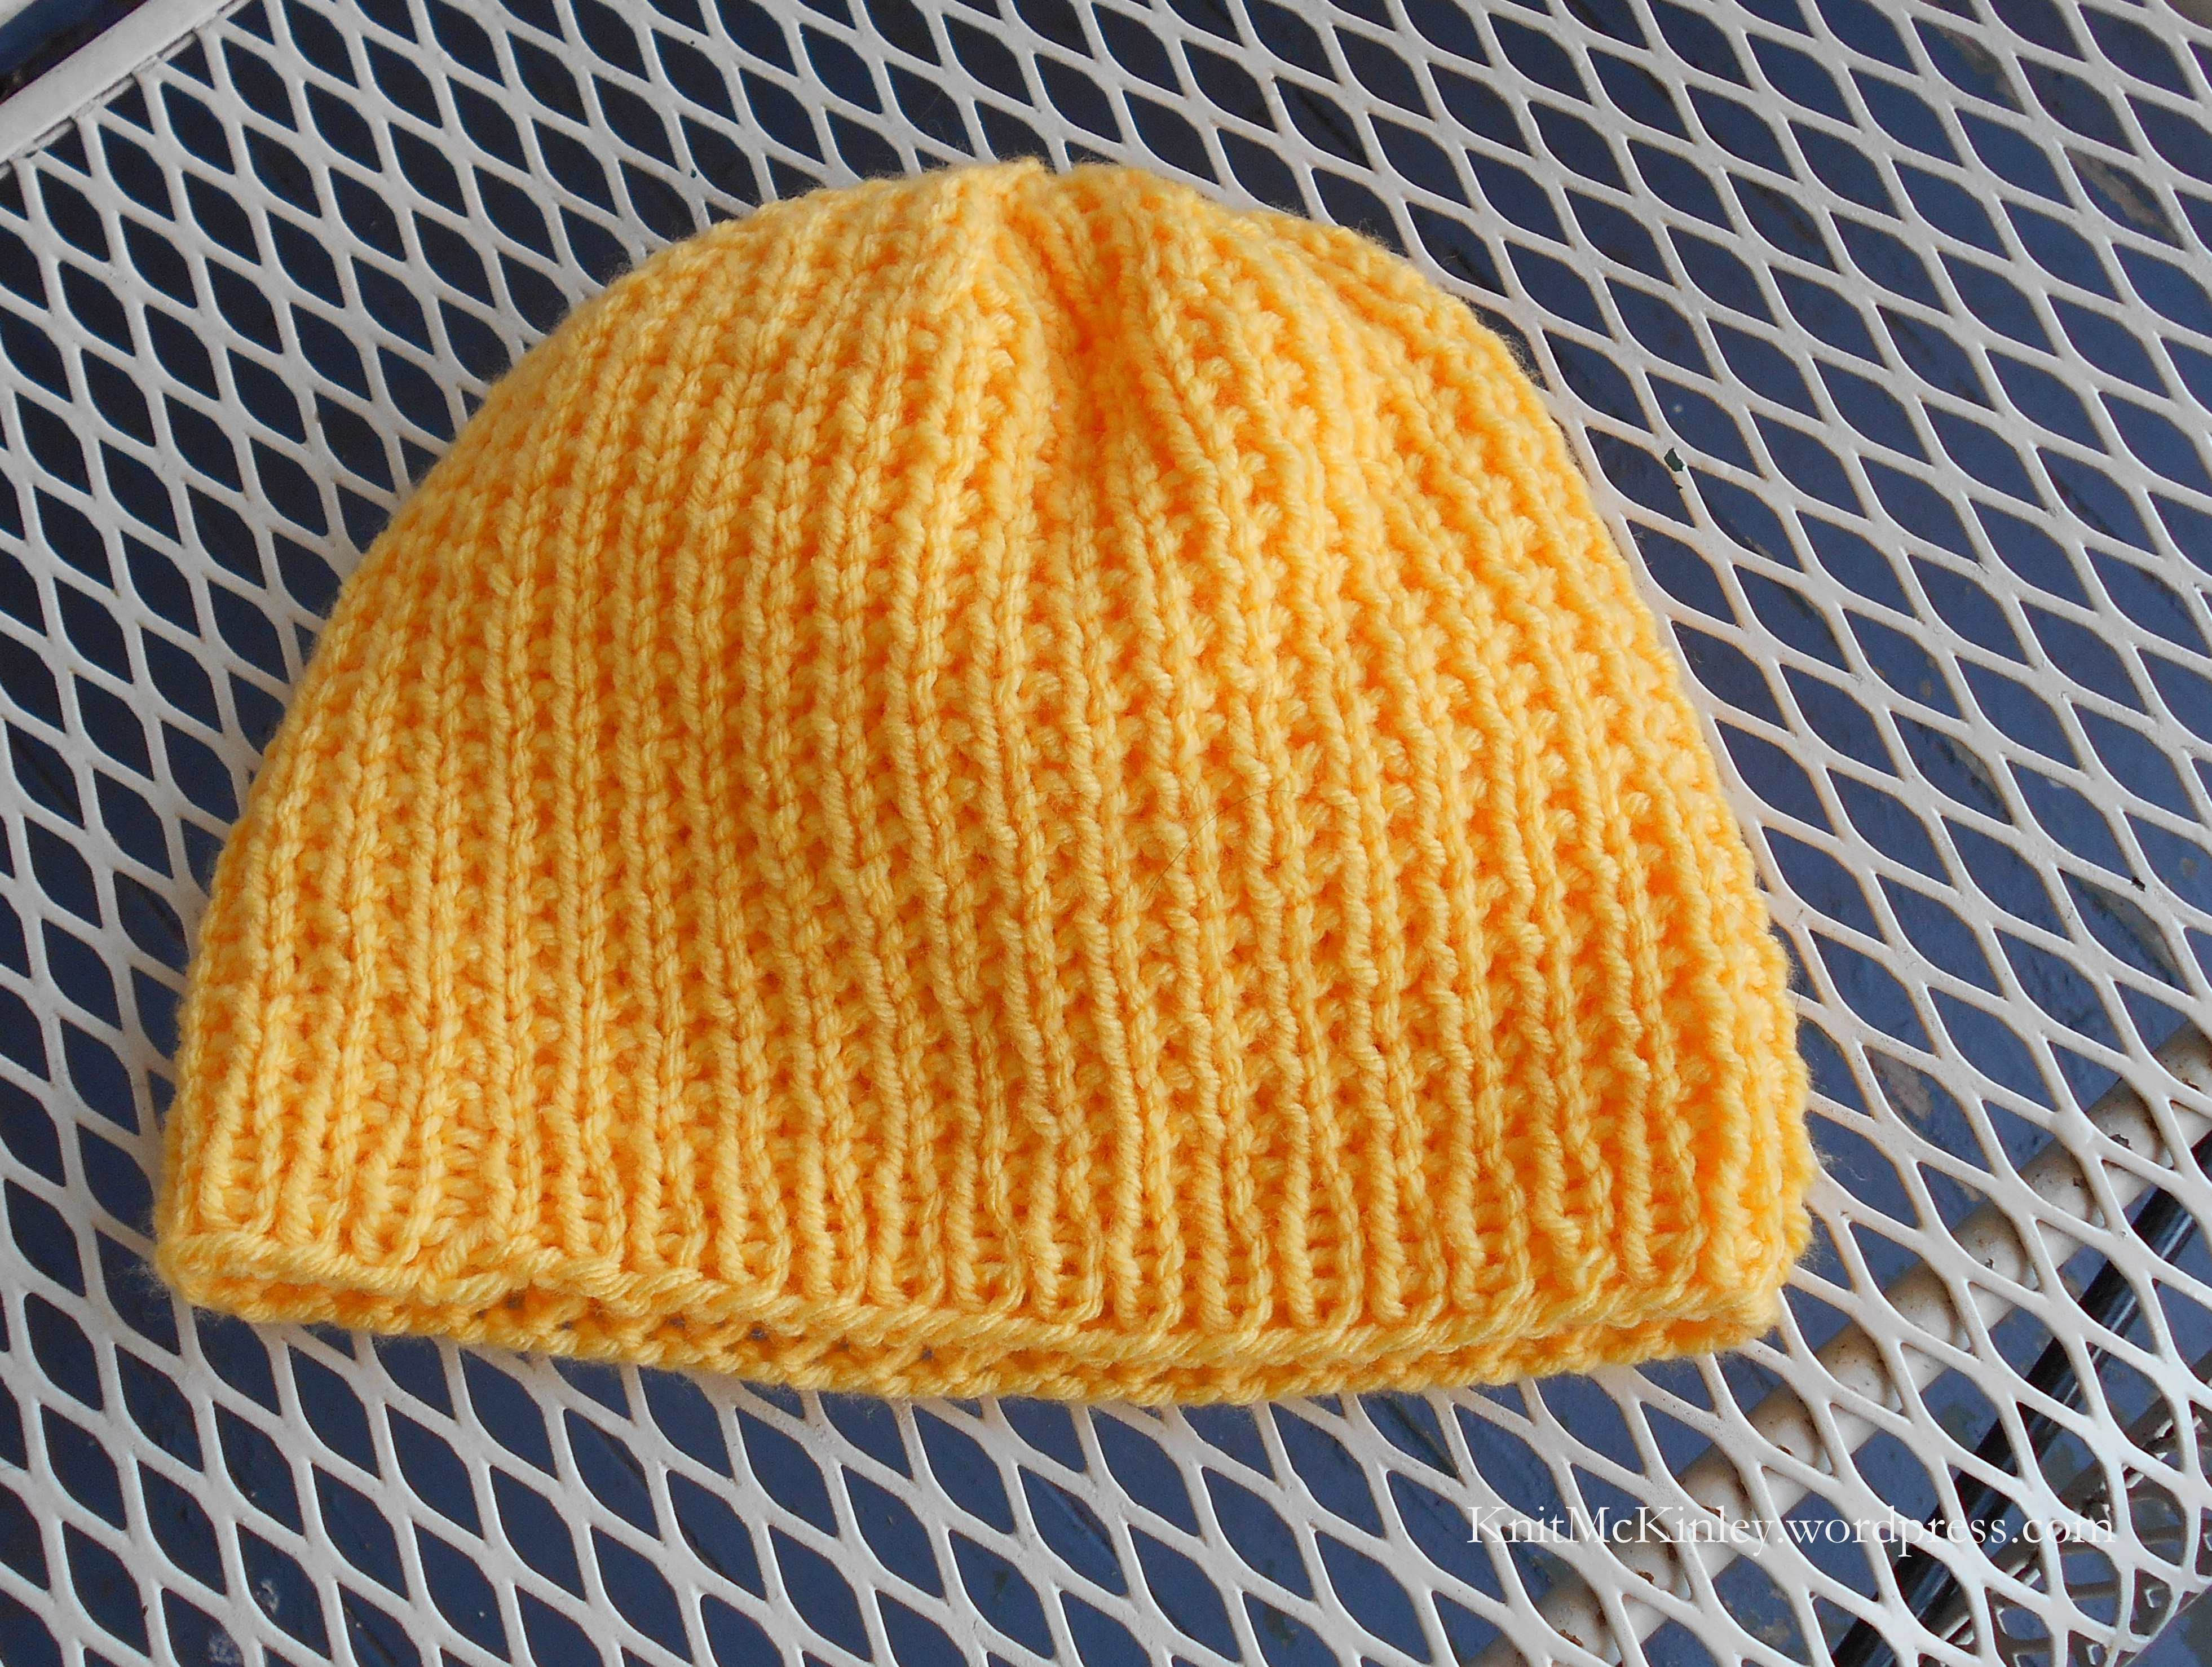 More Hats! – The Knit McKinley